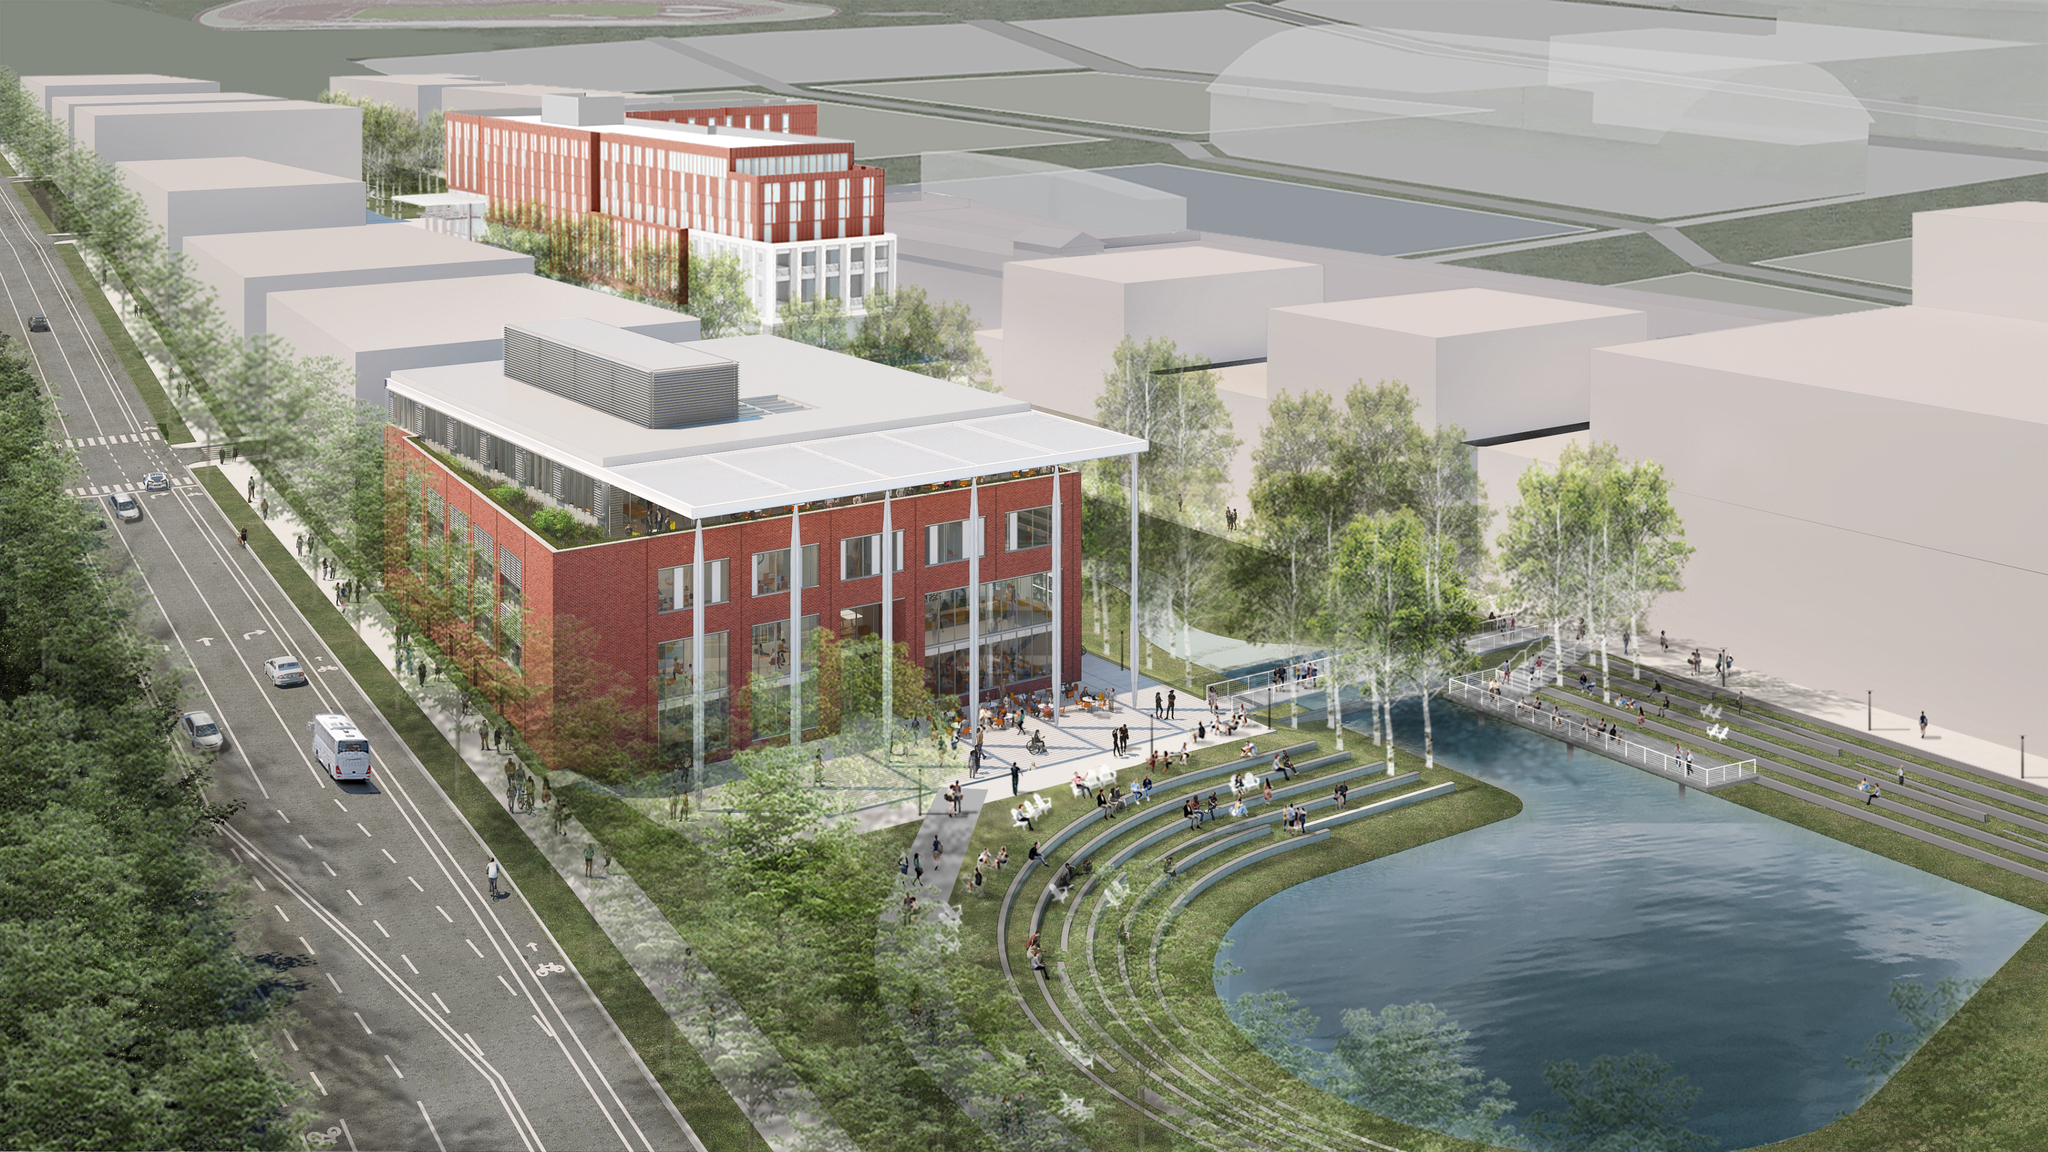 Image of the new School of Data Science building